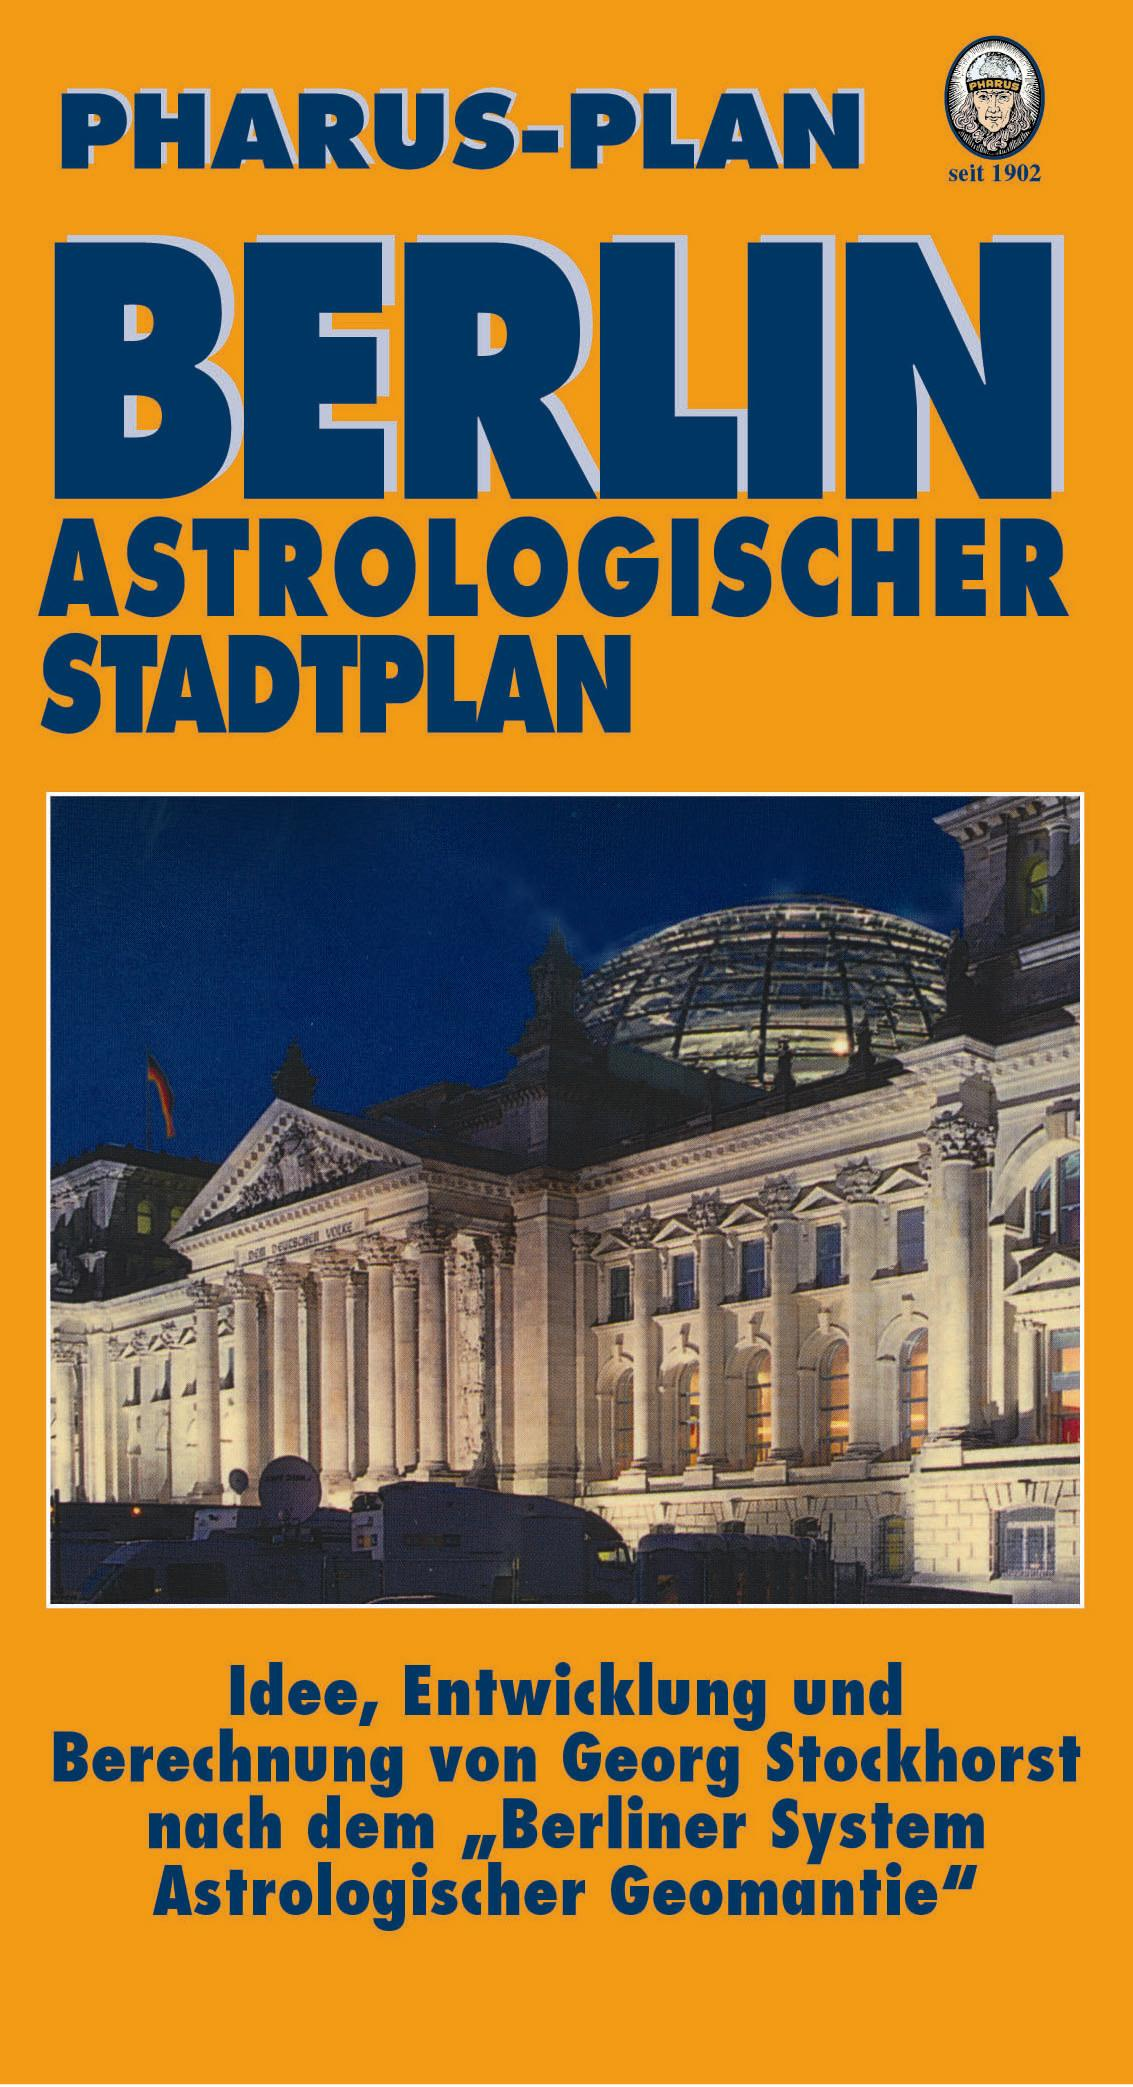 Astrological Town Plan Berlin, 2003 - ISBN-13: 978-3865140074